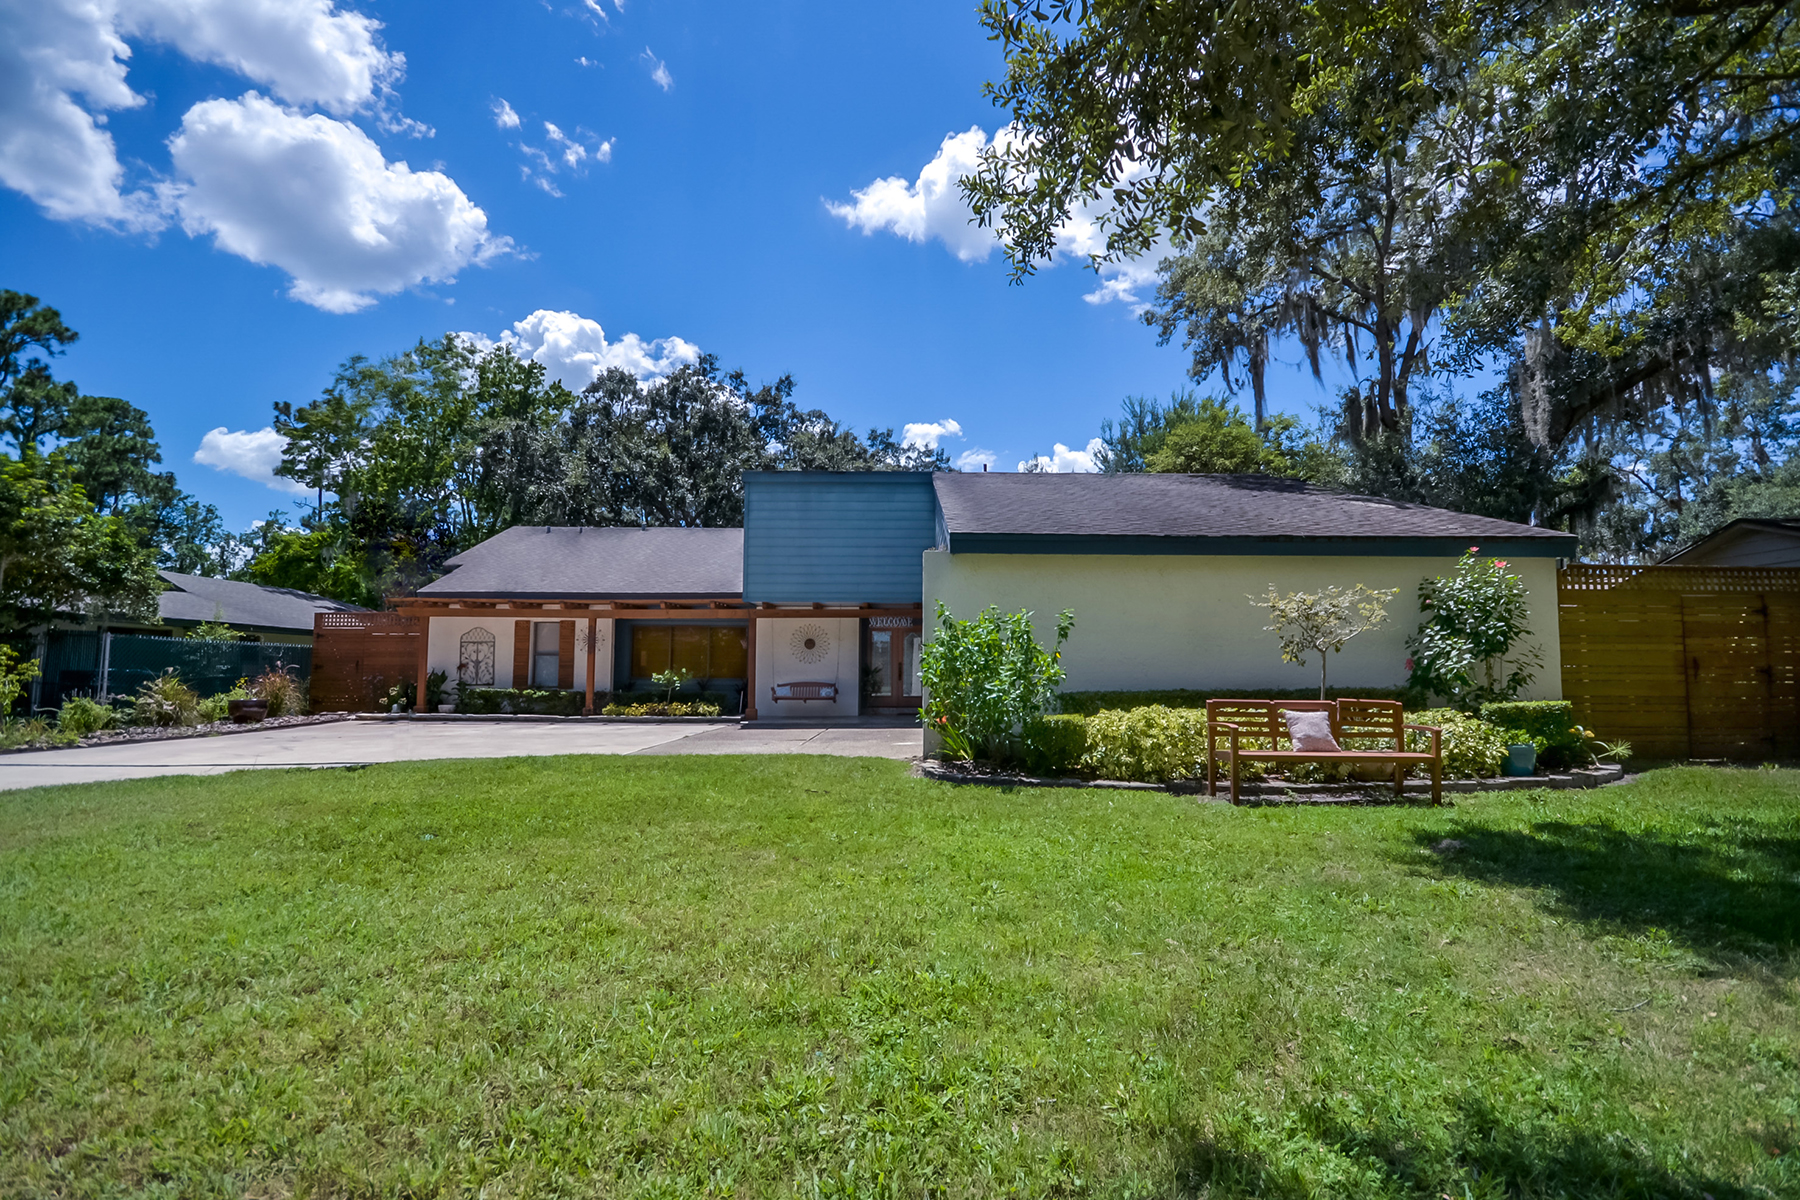 Single Family Home for Sale at Winter Park, Flordia 4068 Tenita Dr Winter Park, Florida, 32792 United States